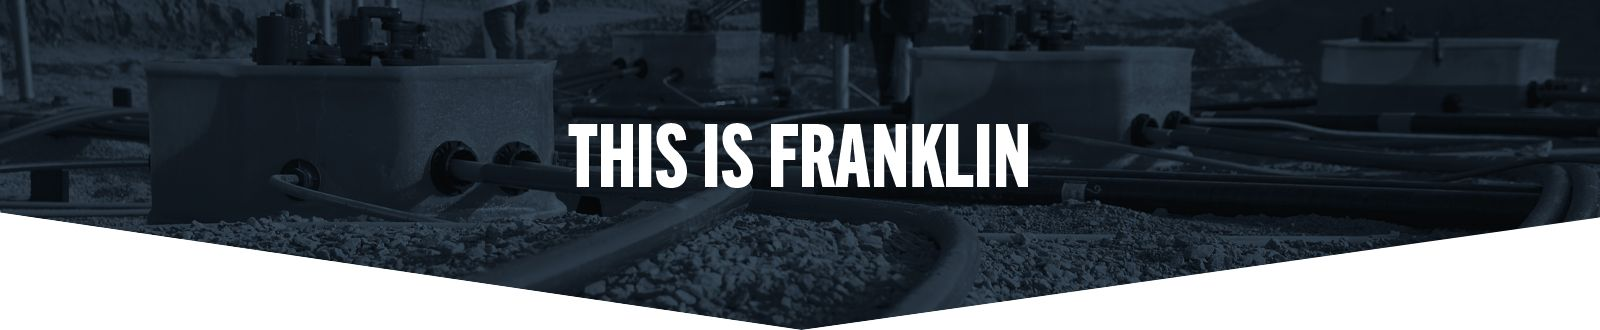 This-Is-Franklin-Banner.psd